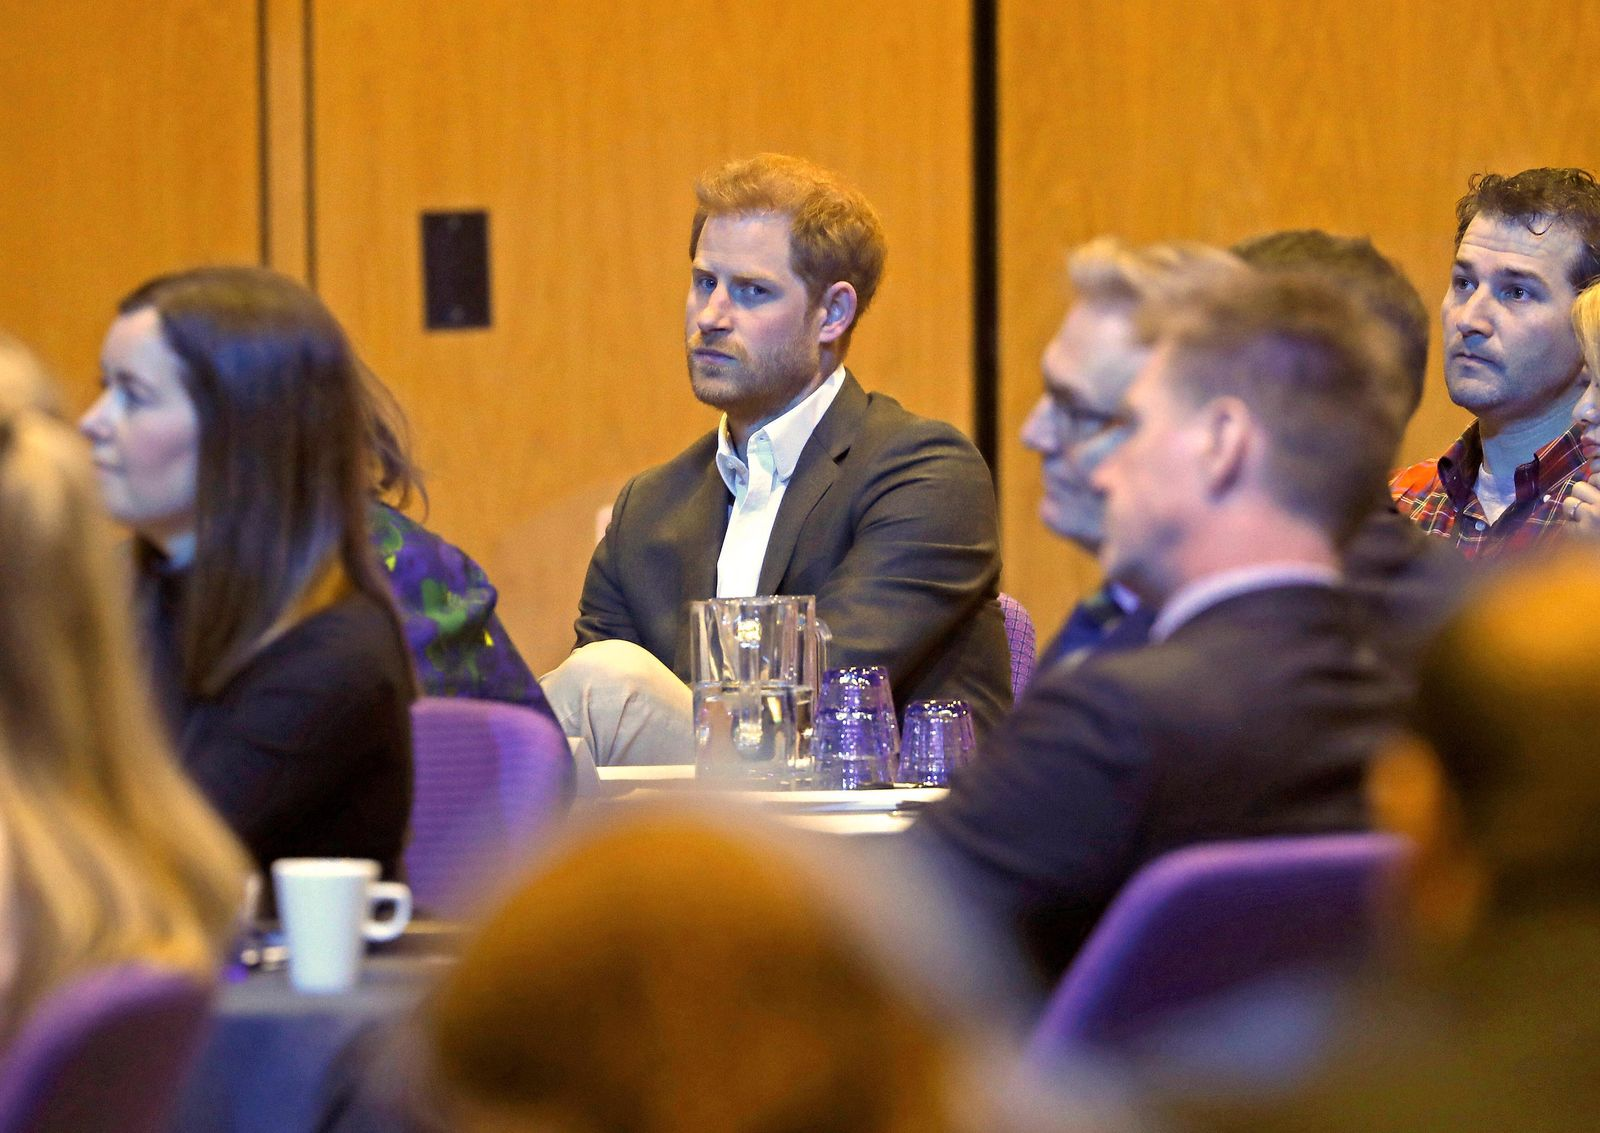 Britain's Prince Harry attends a sustainable tourism summit at the Edinburgh International Conference Centre in Edinburgh, Scotland, Wednesday, Feb. 26, 2020. (Andrew Milligan/Pool Photo via AP)